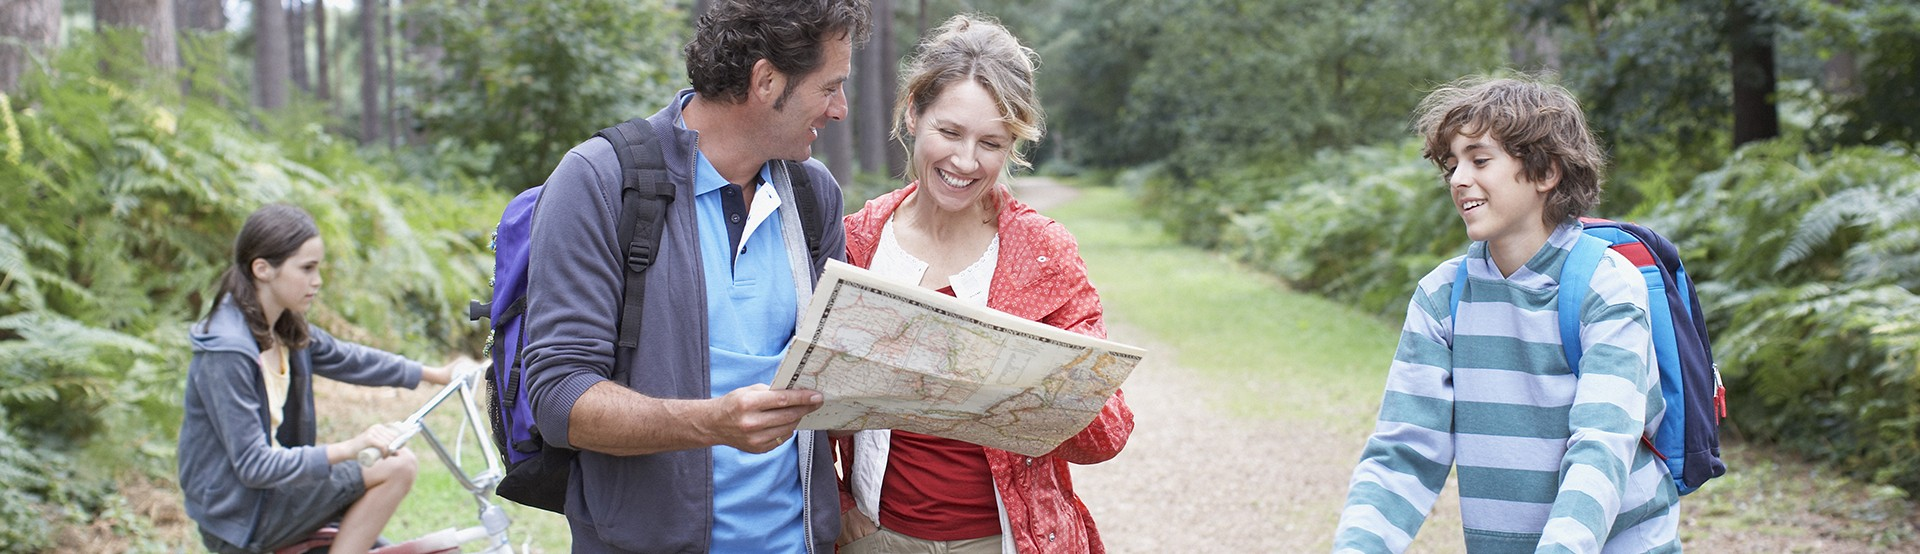 mother and father smiling and reading a map in the woods with their kids on bikes around them